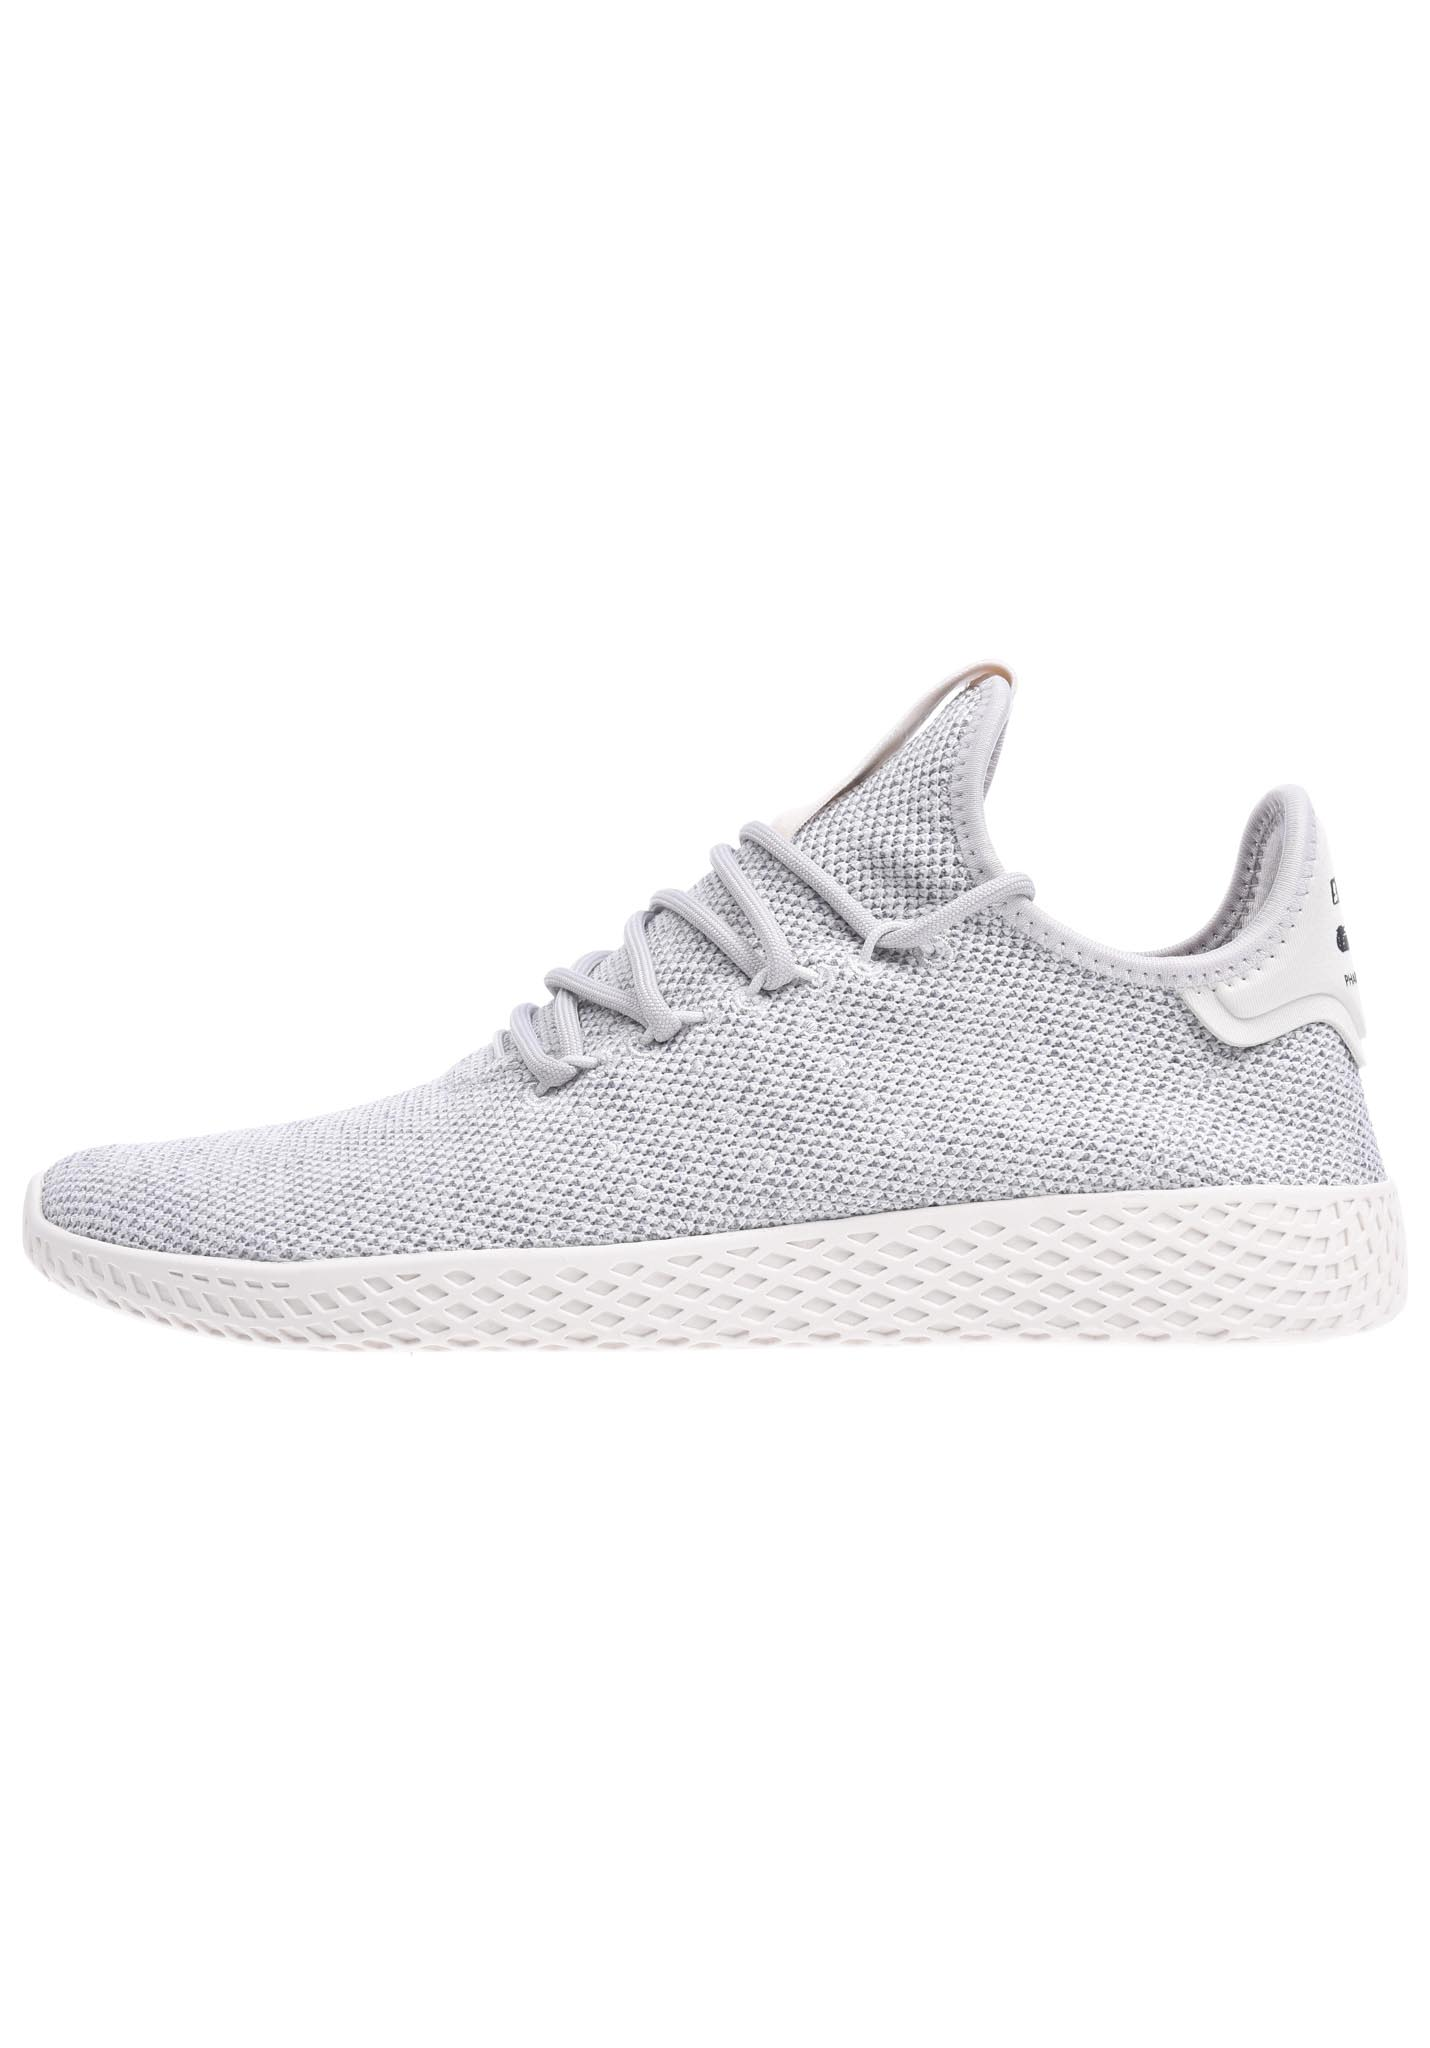 ADIDAS ORIGINALS Pharrell Williams Tennis Hu - Sneakers for Men - Grey -  Planet Sports a04a190ee